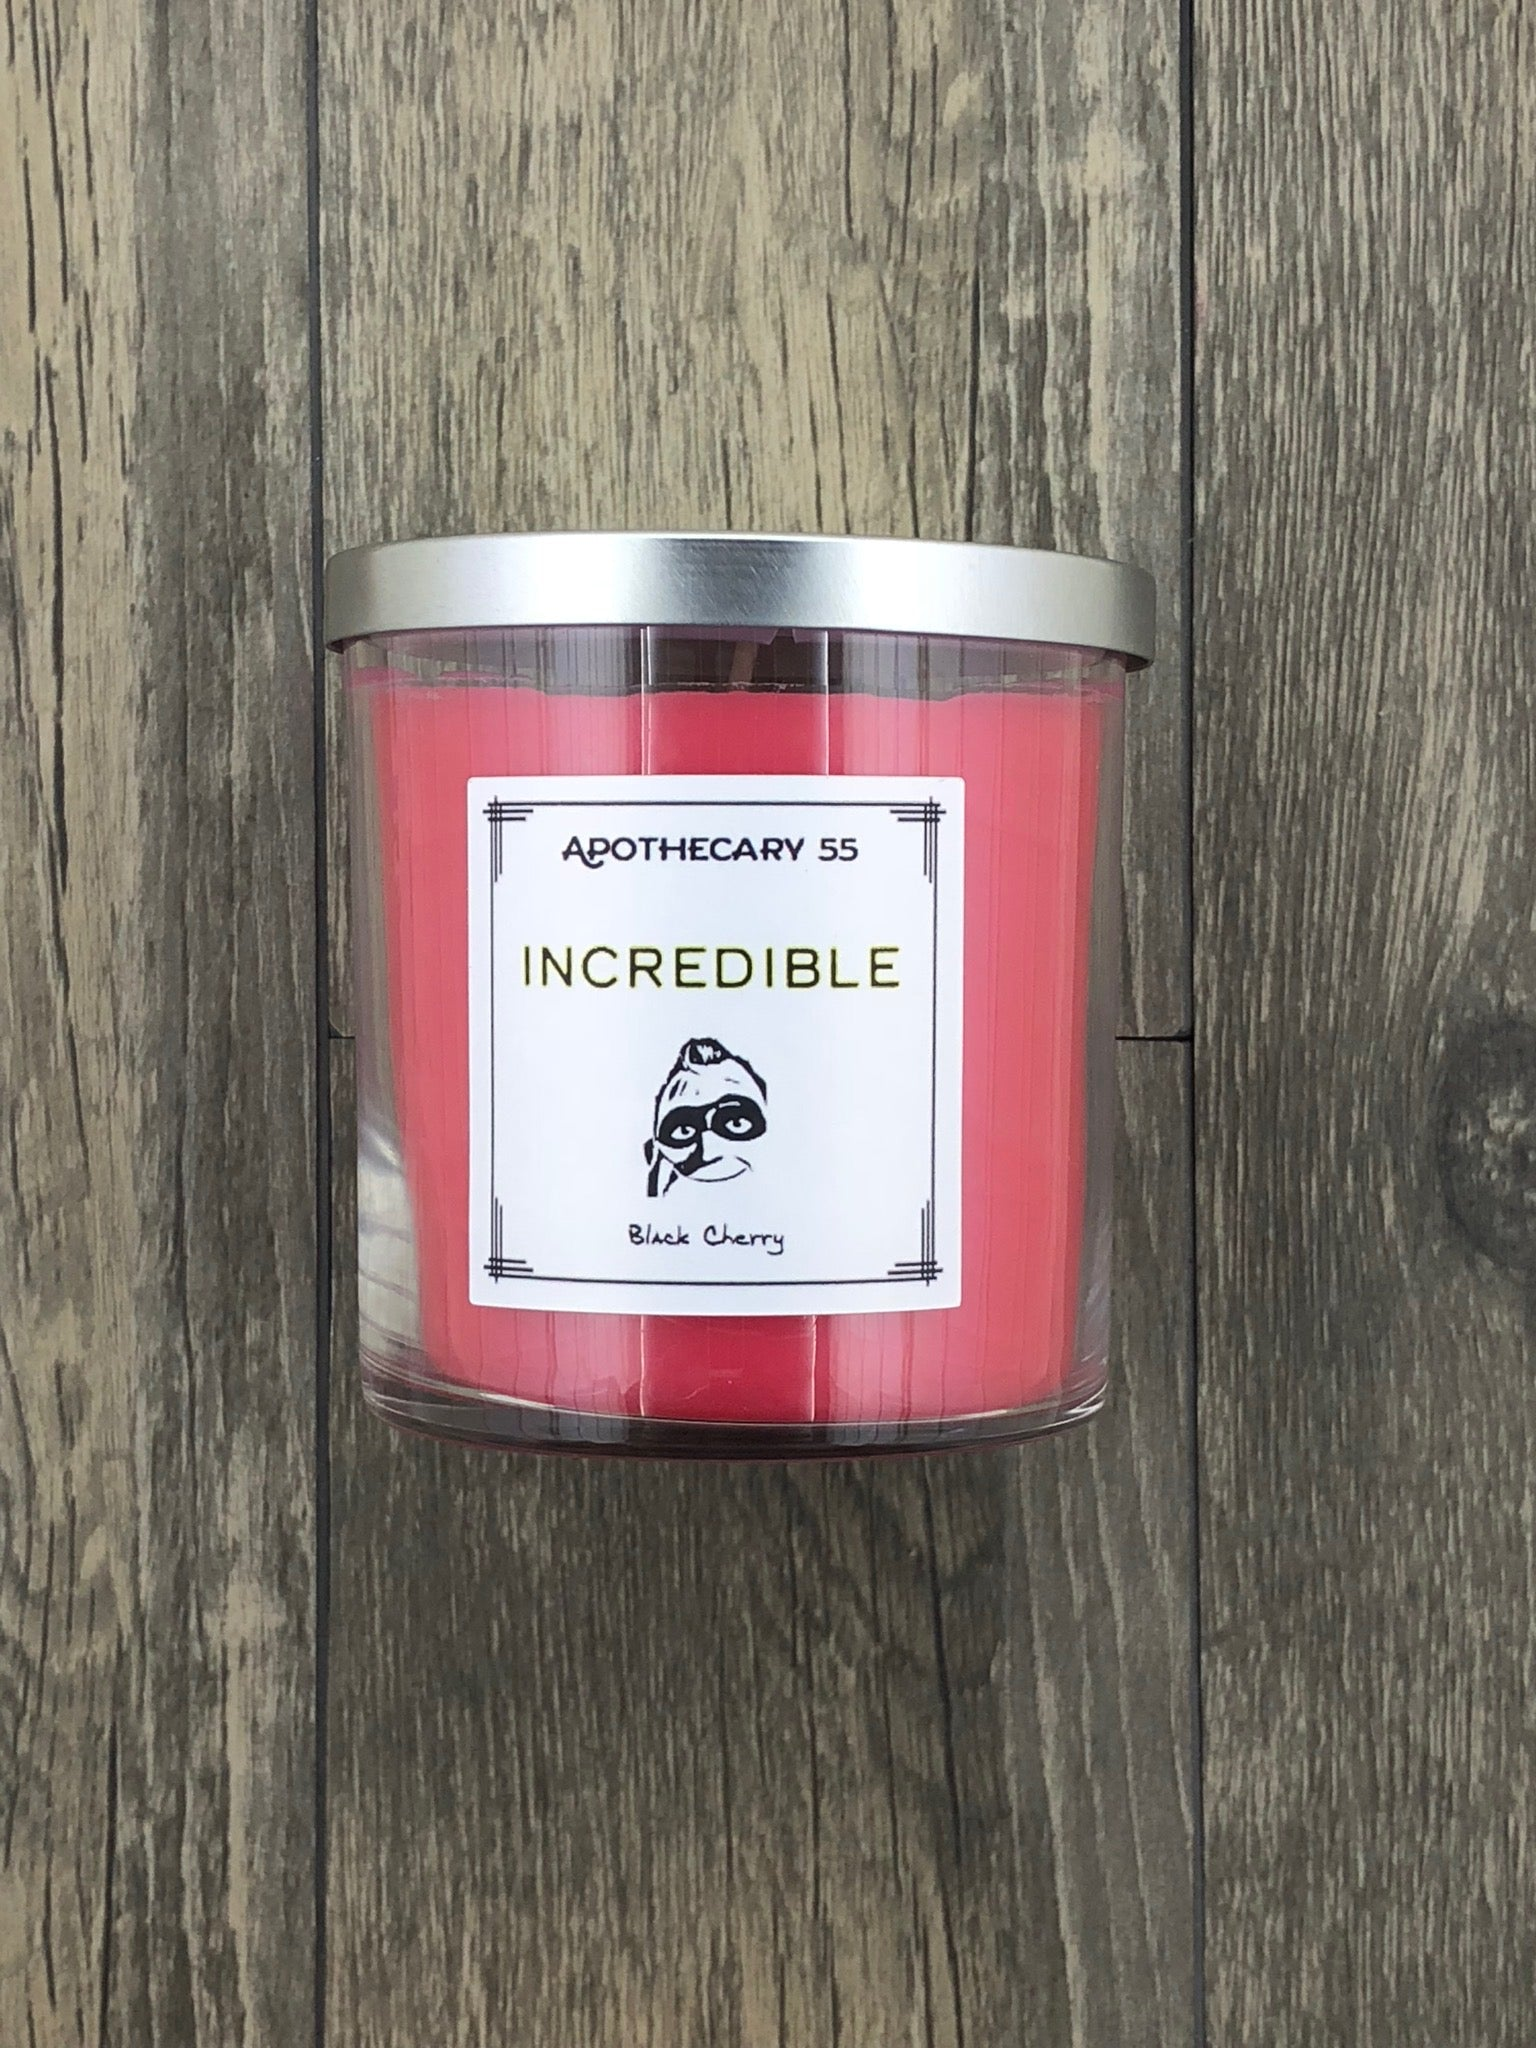 Incredible 9 oz. single-wick candle